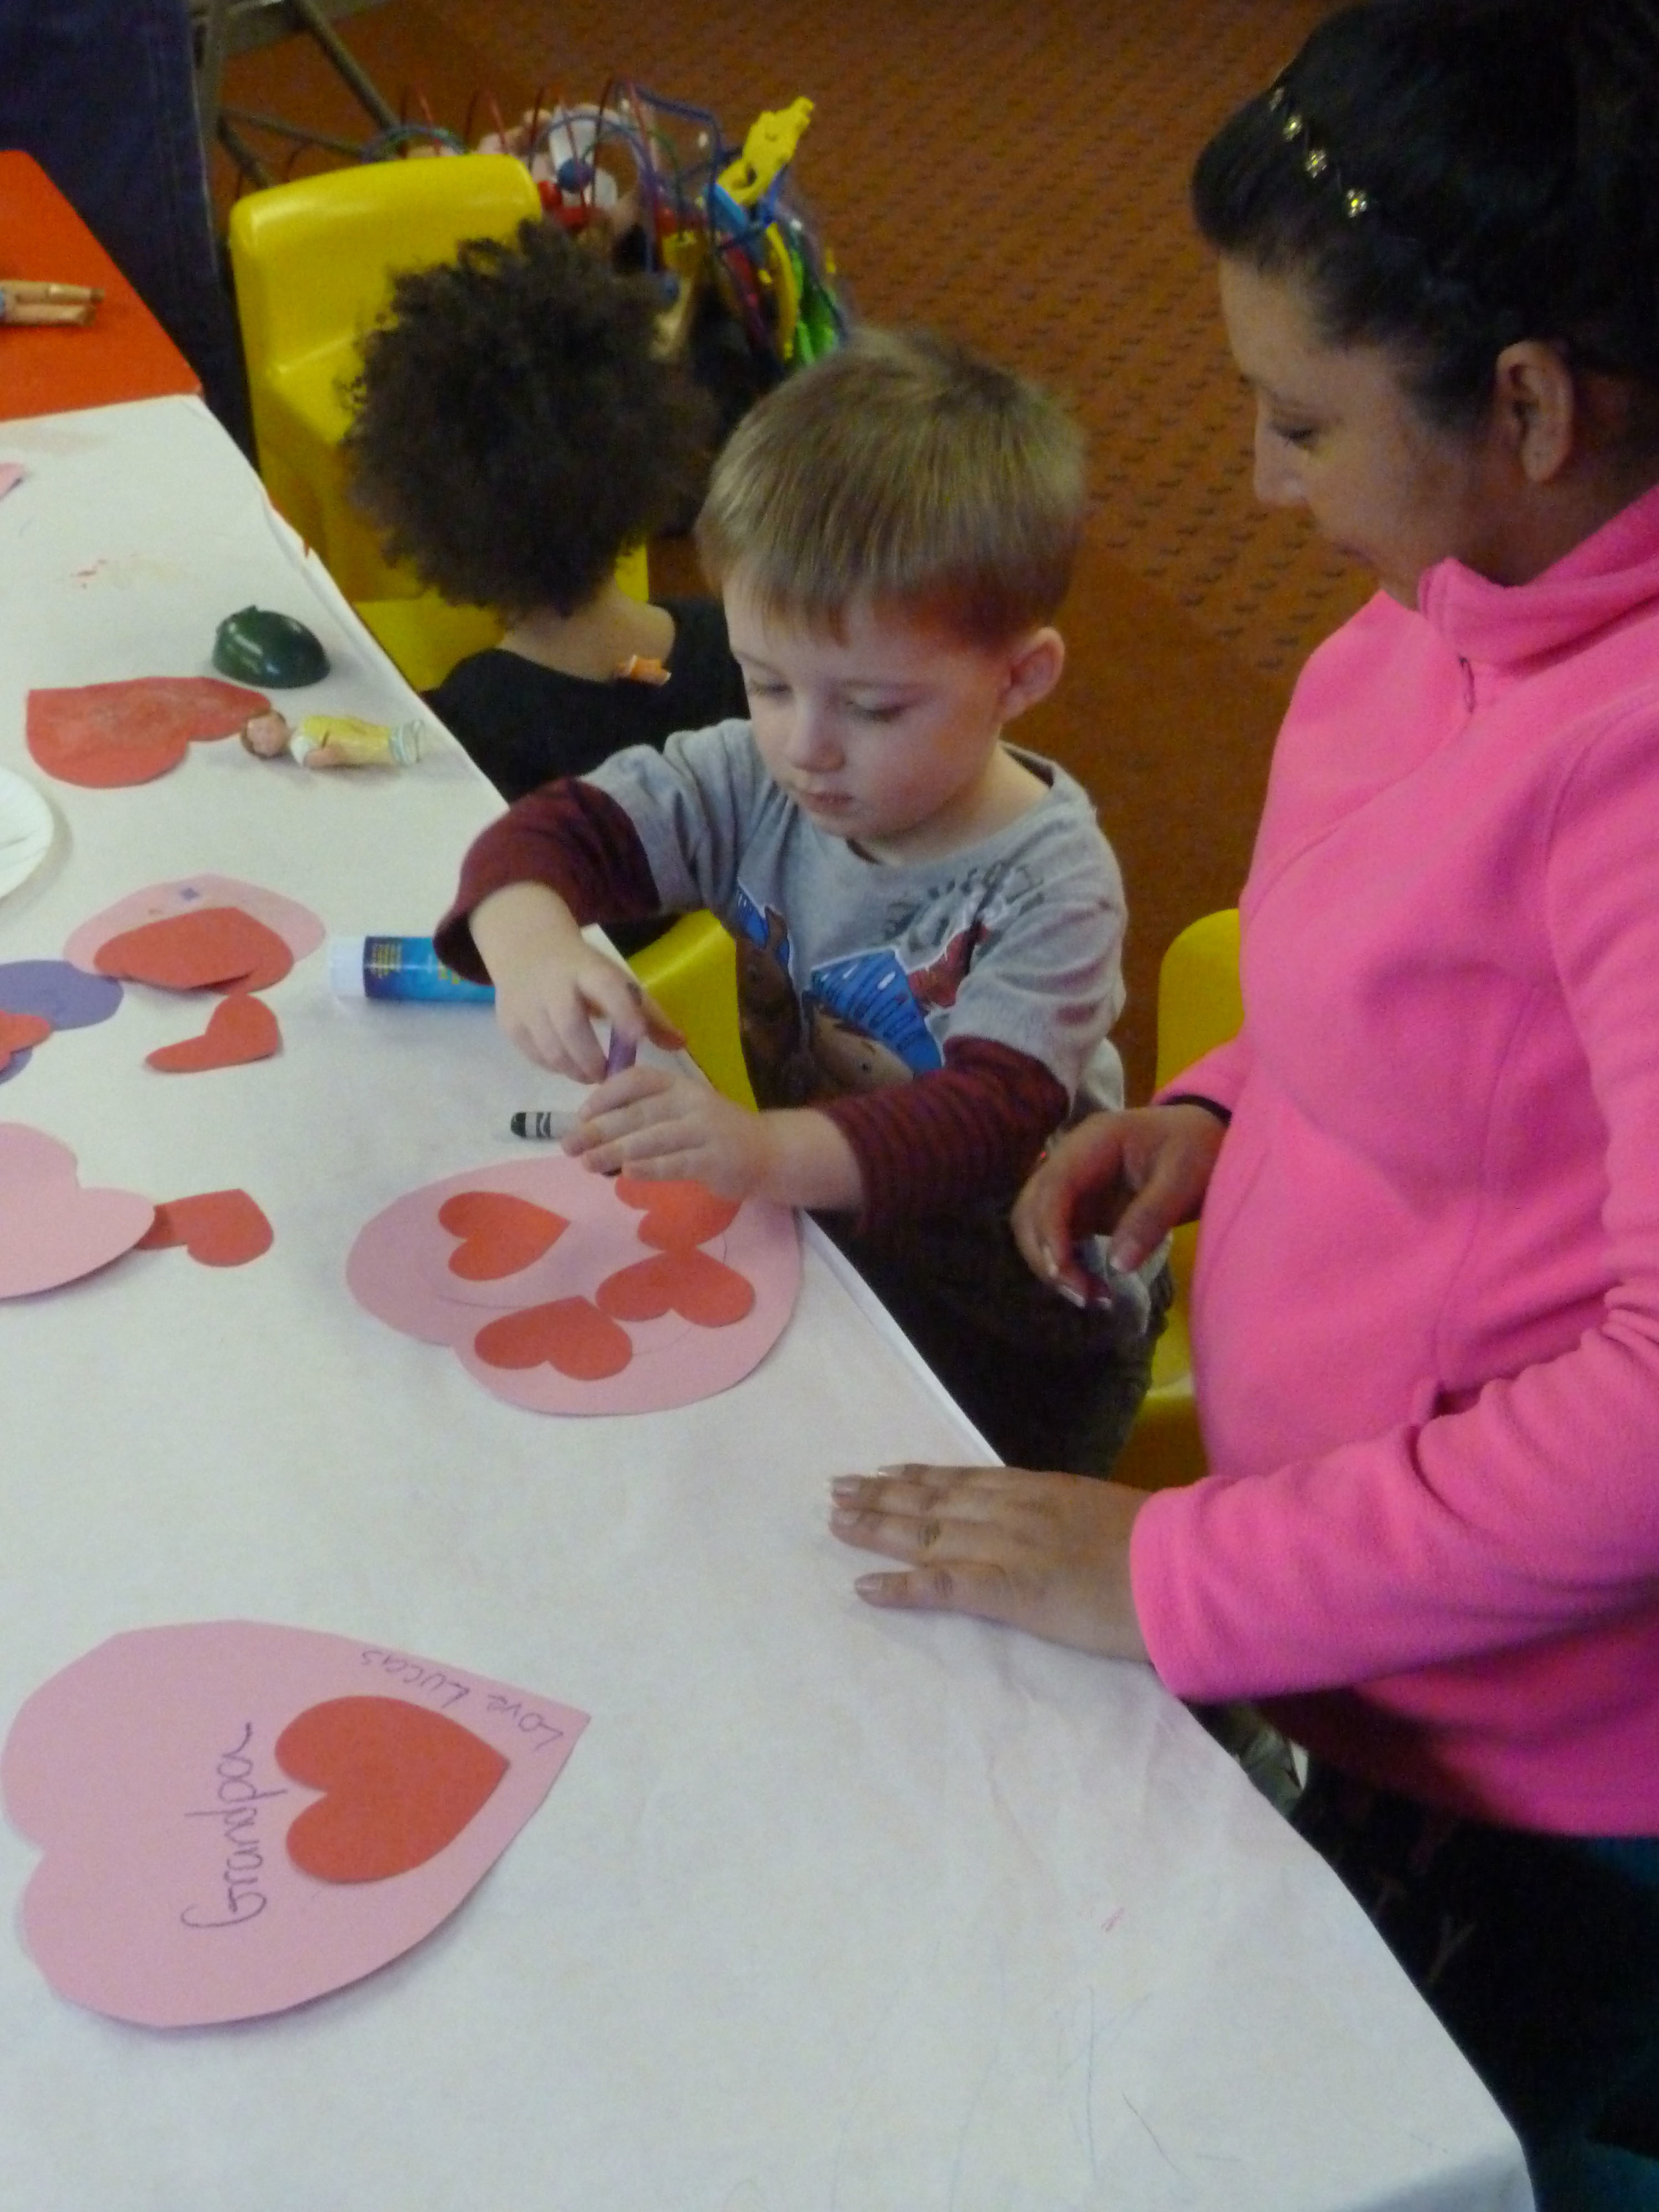 Cut, paste, and color at our craft table.